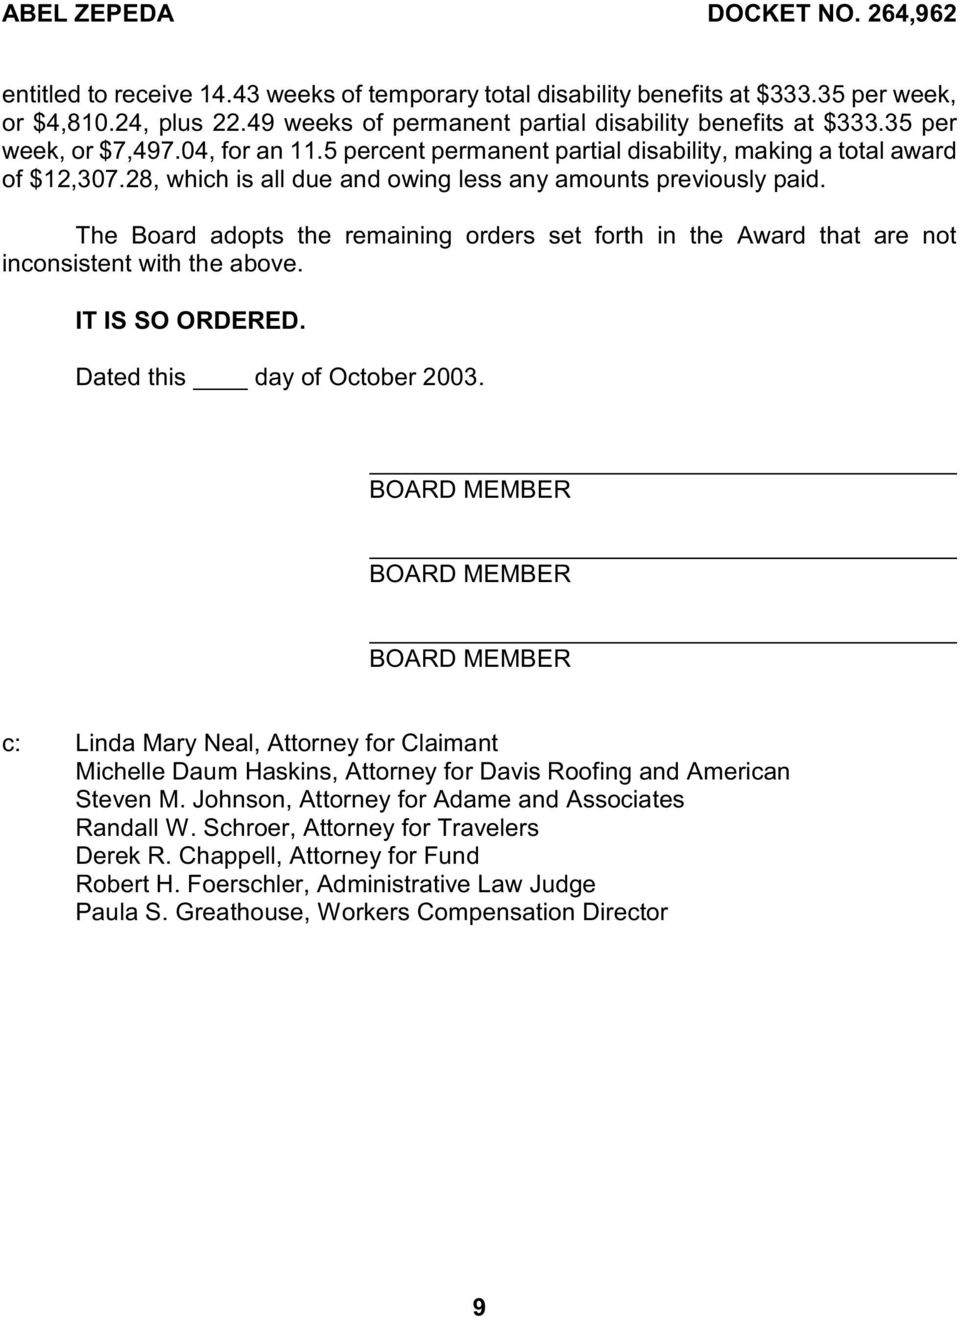 The Board adopts the remaining orders set forth in the Award that are not inconsistent with the above. IT IS SO ORDERED. Dated this day of October 2003.